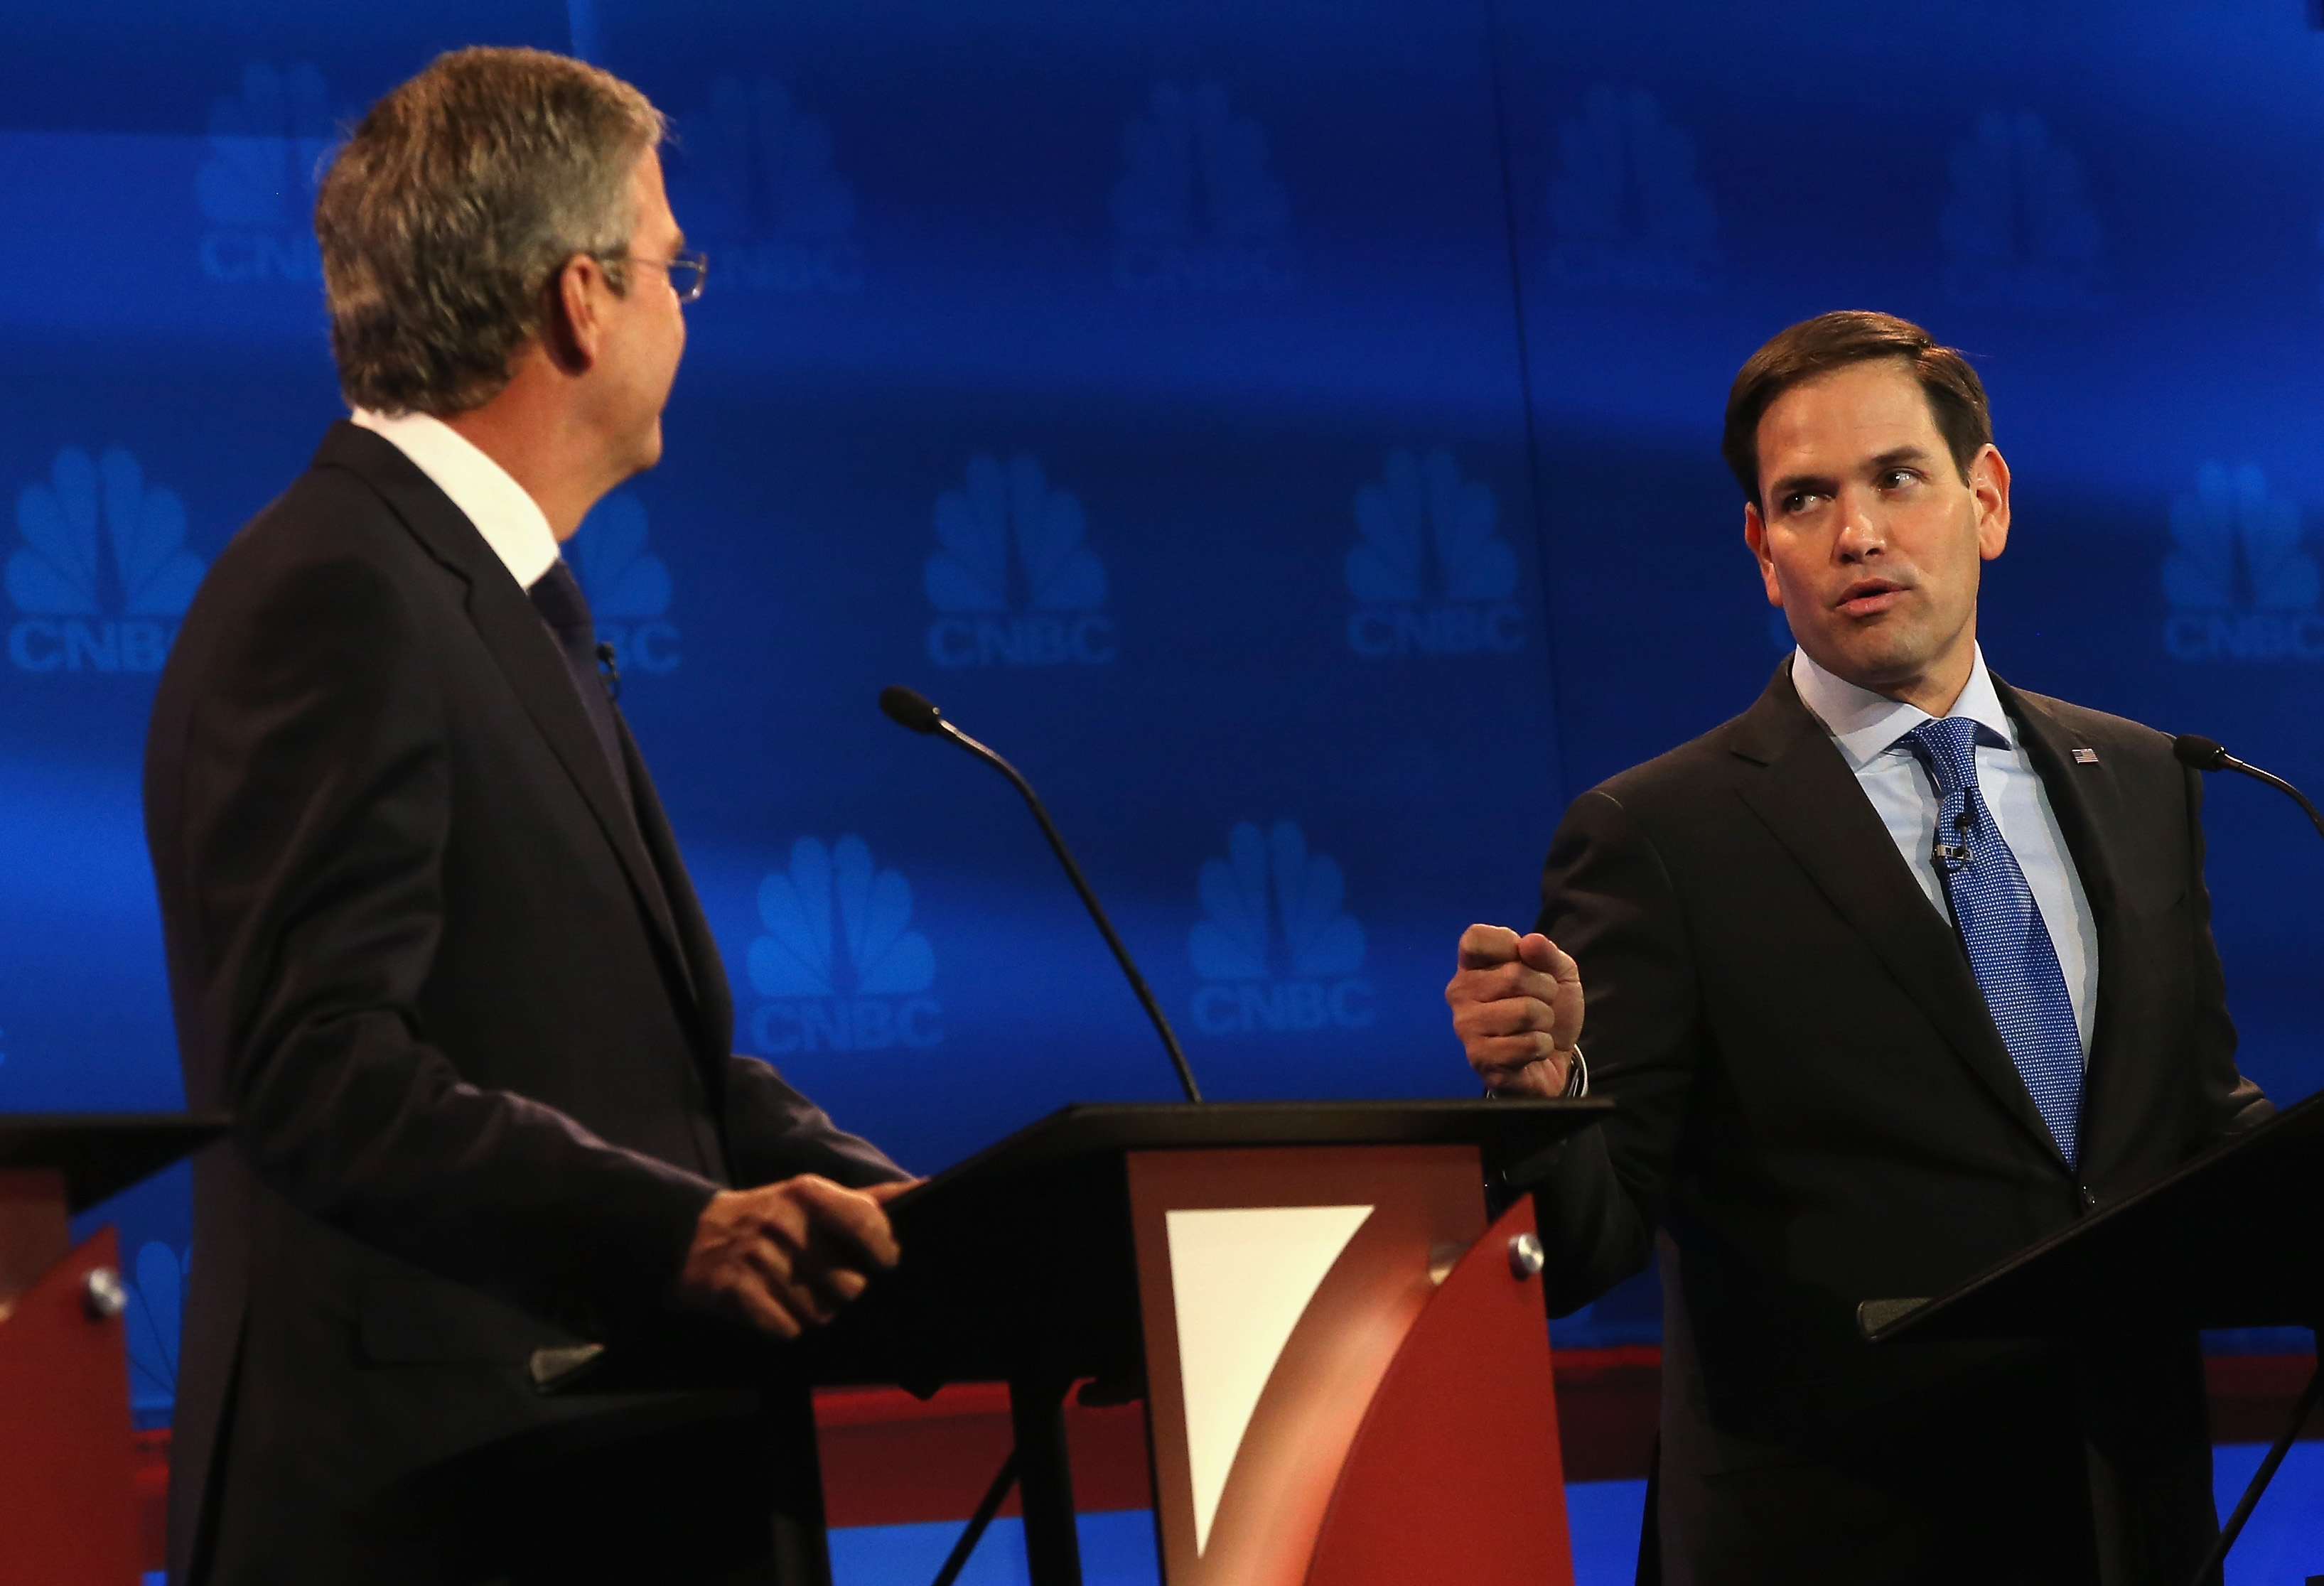 Presidential candidates Sen. Marco Rubio (R) (R-FL) speaks while Jeb Bush looks on during the CNBC Republican Presidential Debate in Boulder, Colorado on Oct. 28, 2015 .